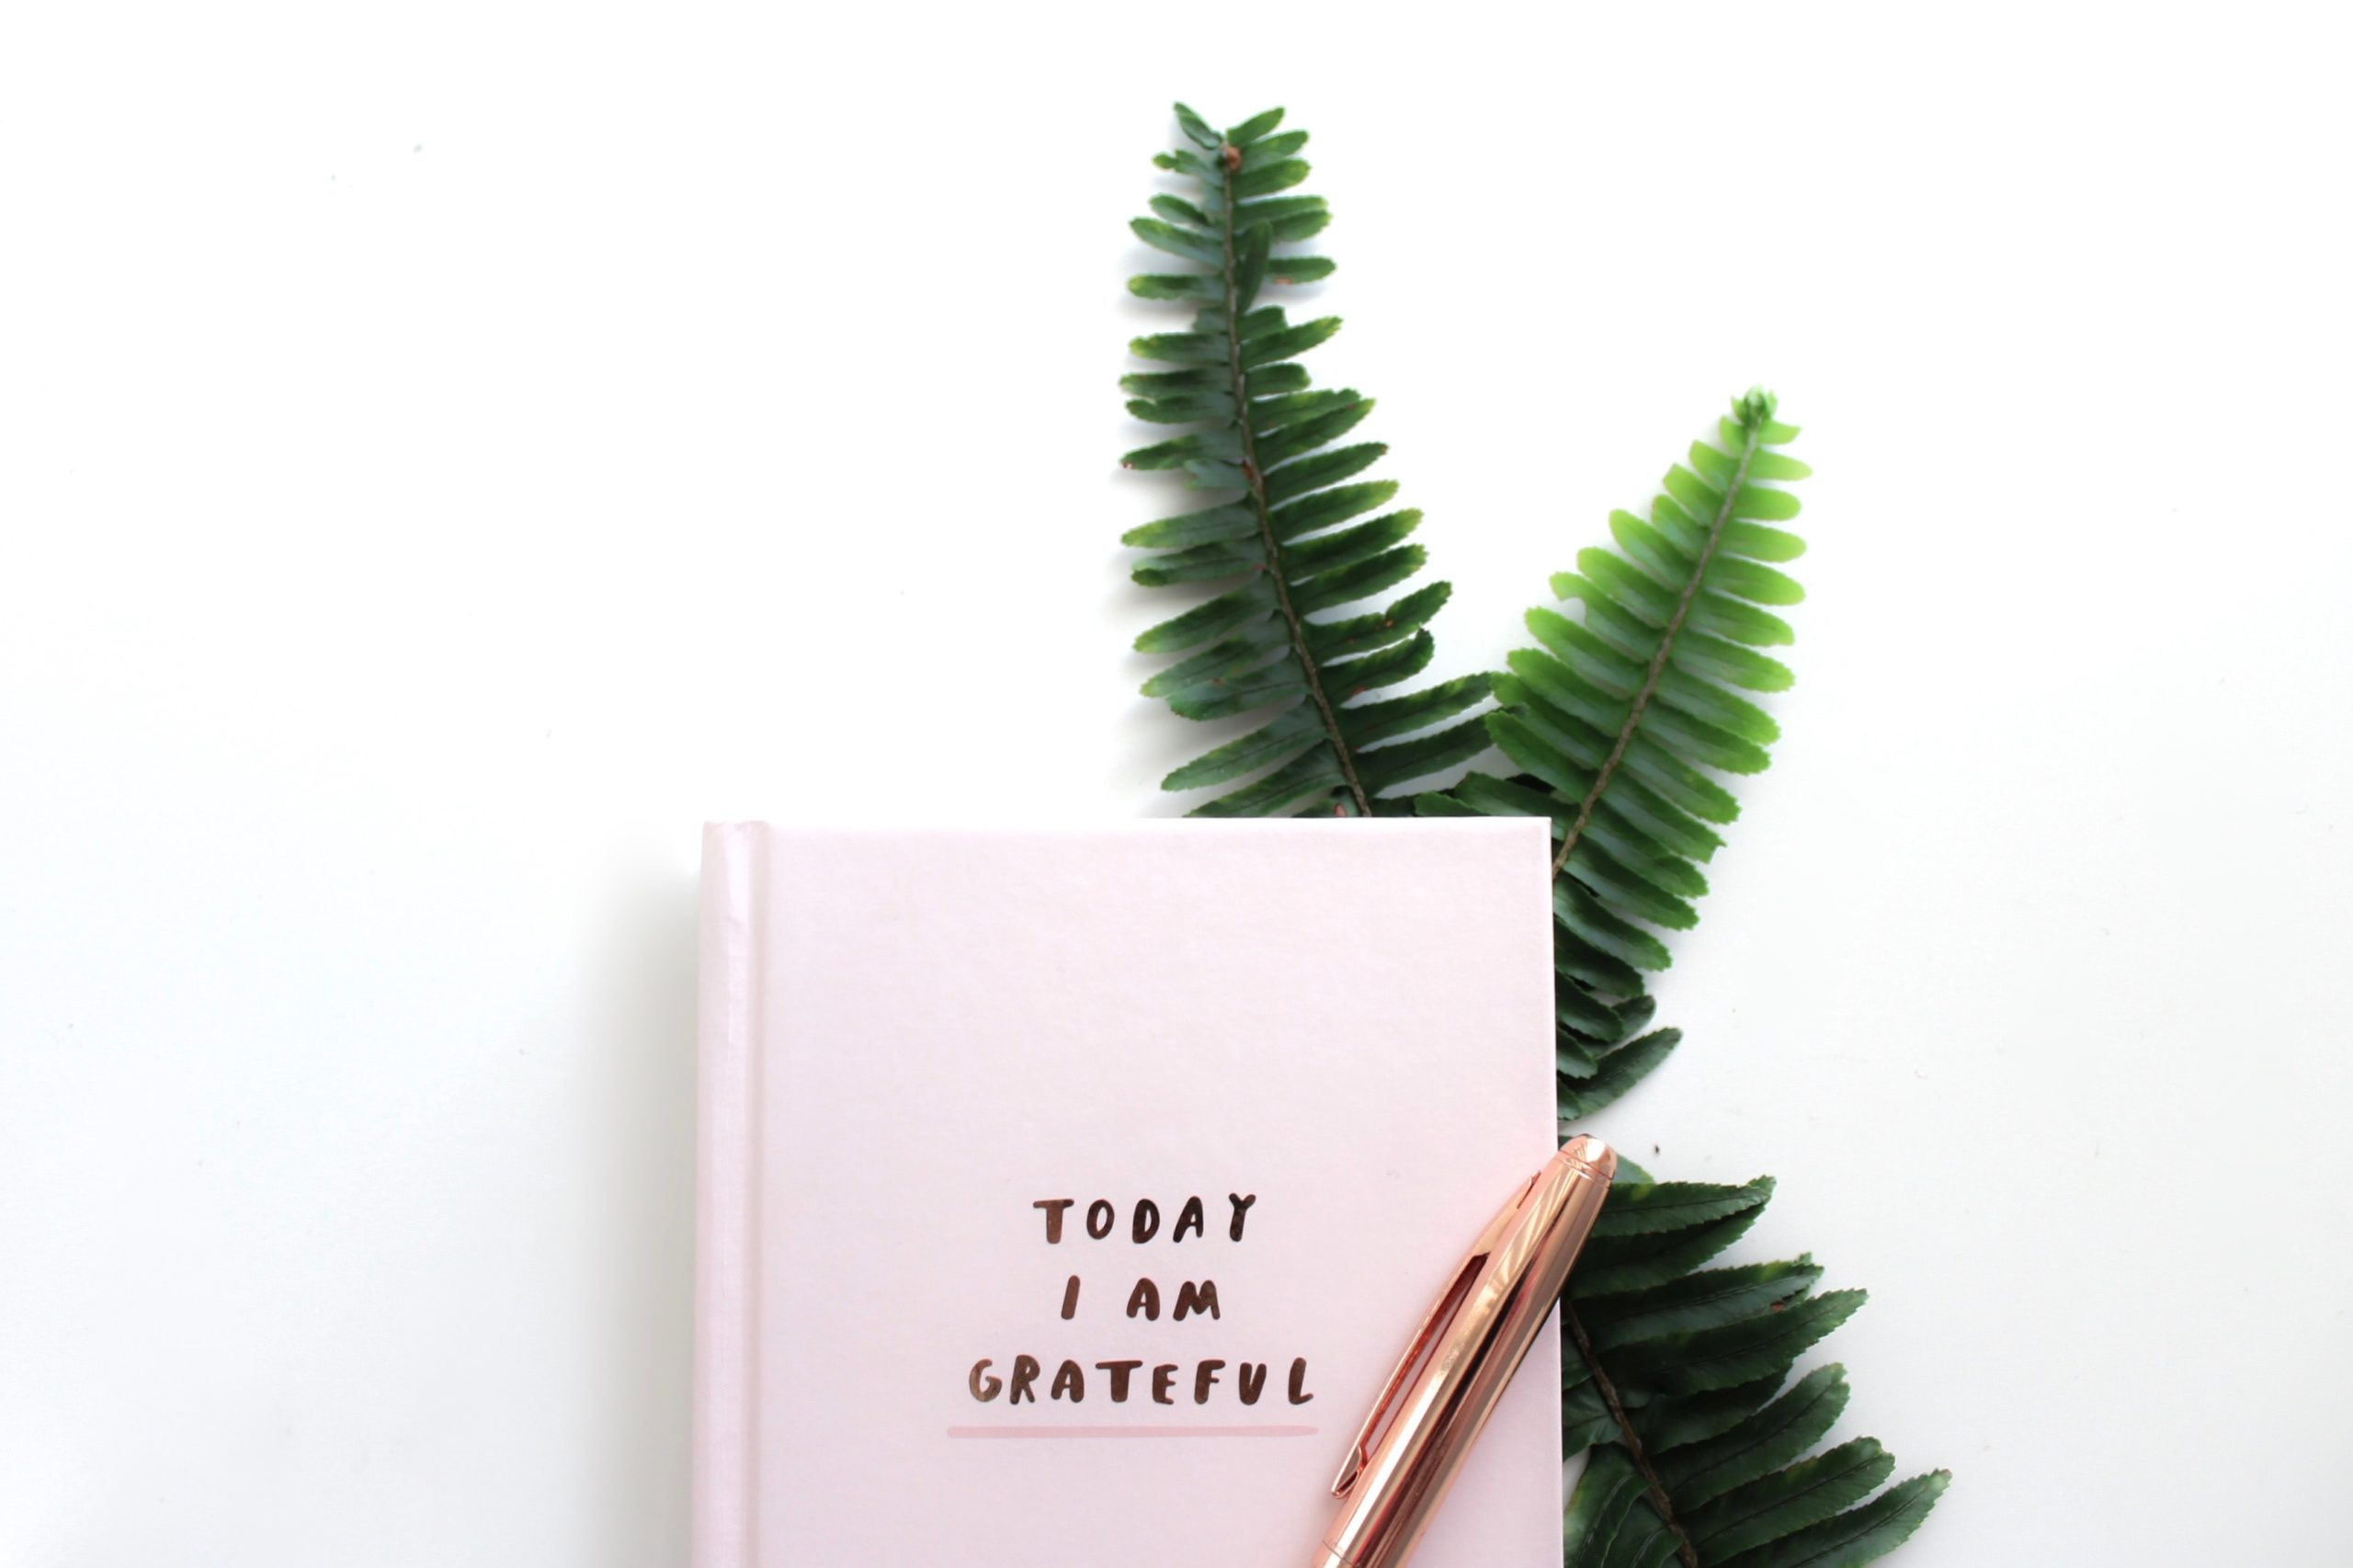 """Kimberlite Enterprises blog, a diary with the words """"Today I am grateful"""" written on the front."""